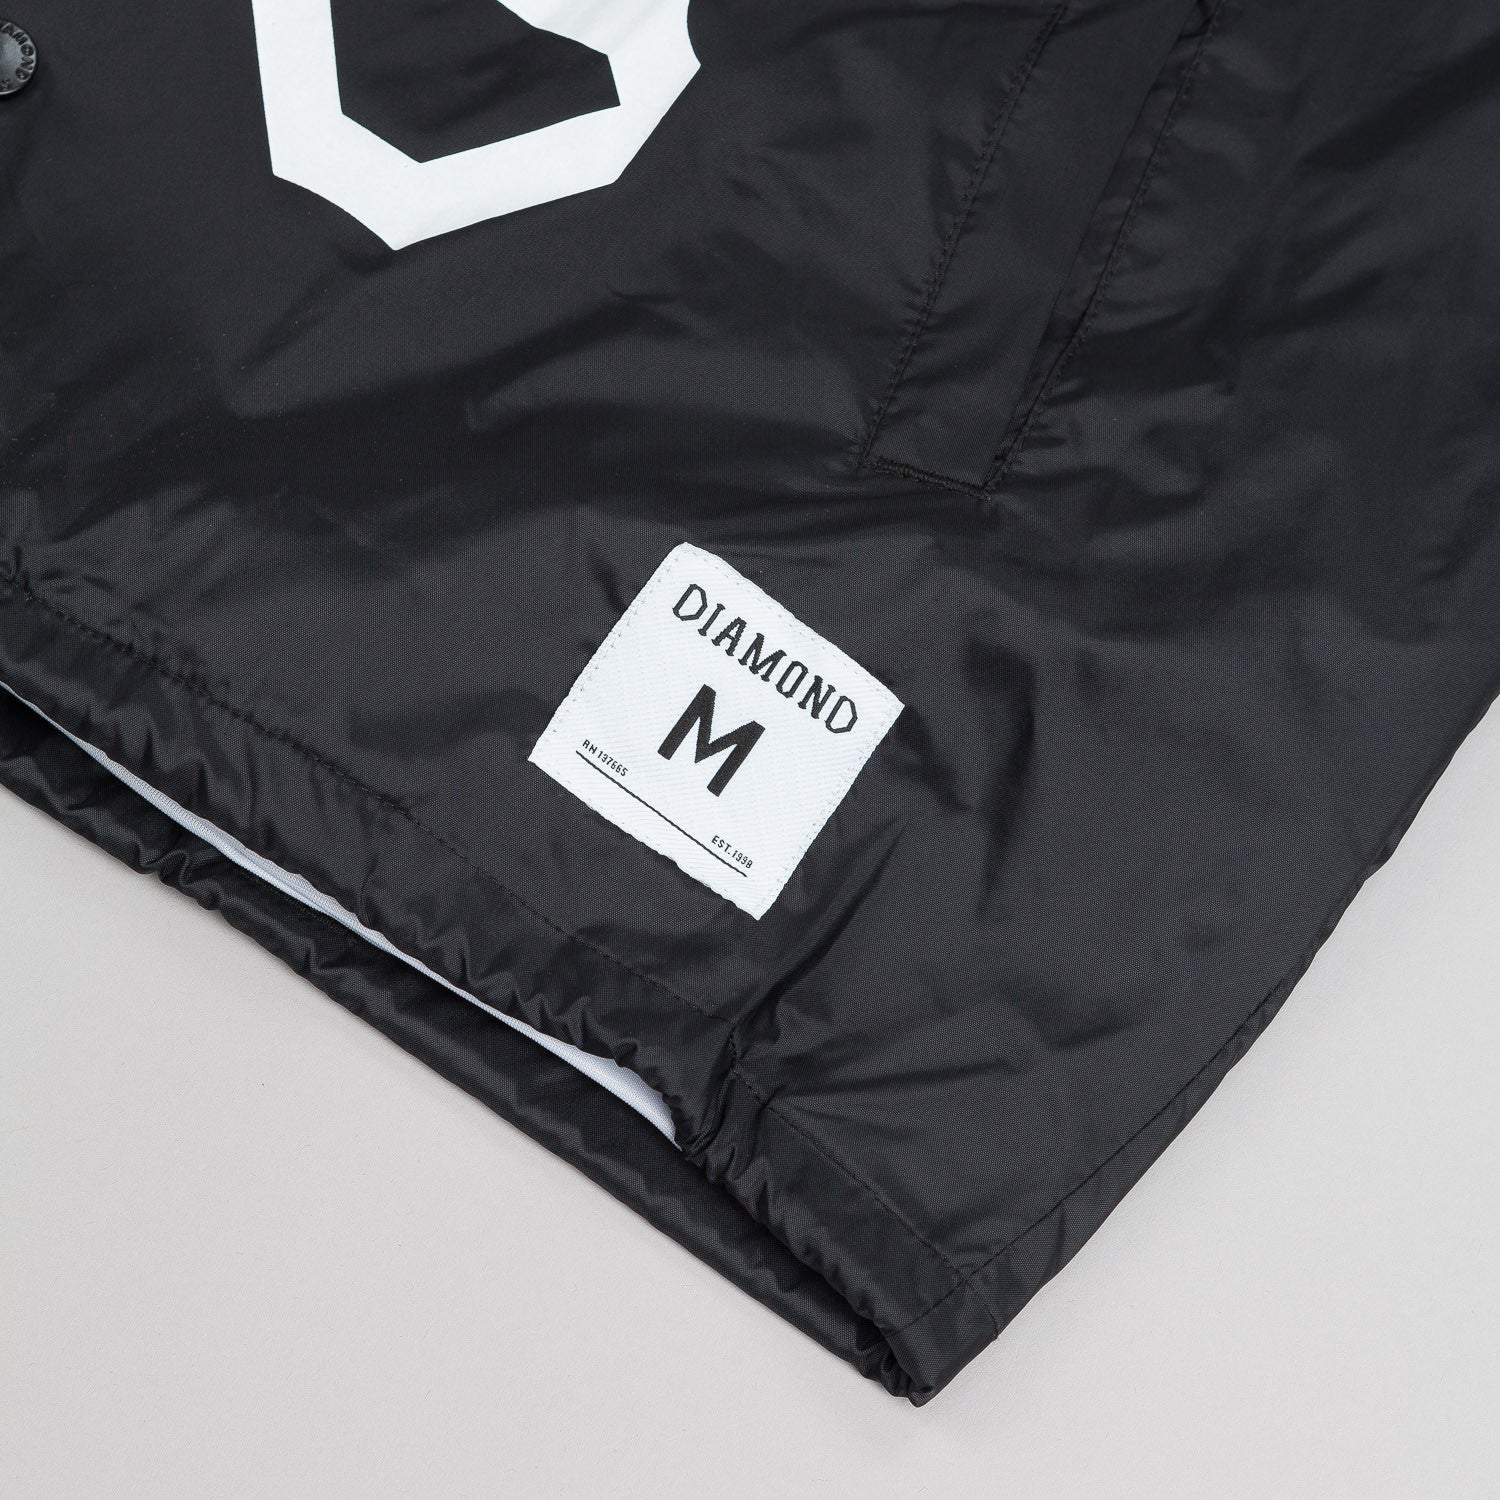 Diamond Dugout Coach Jacket - Black